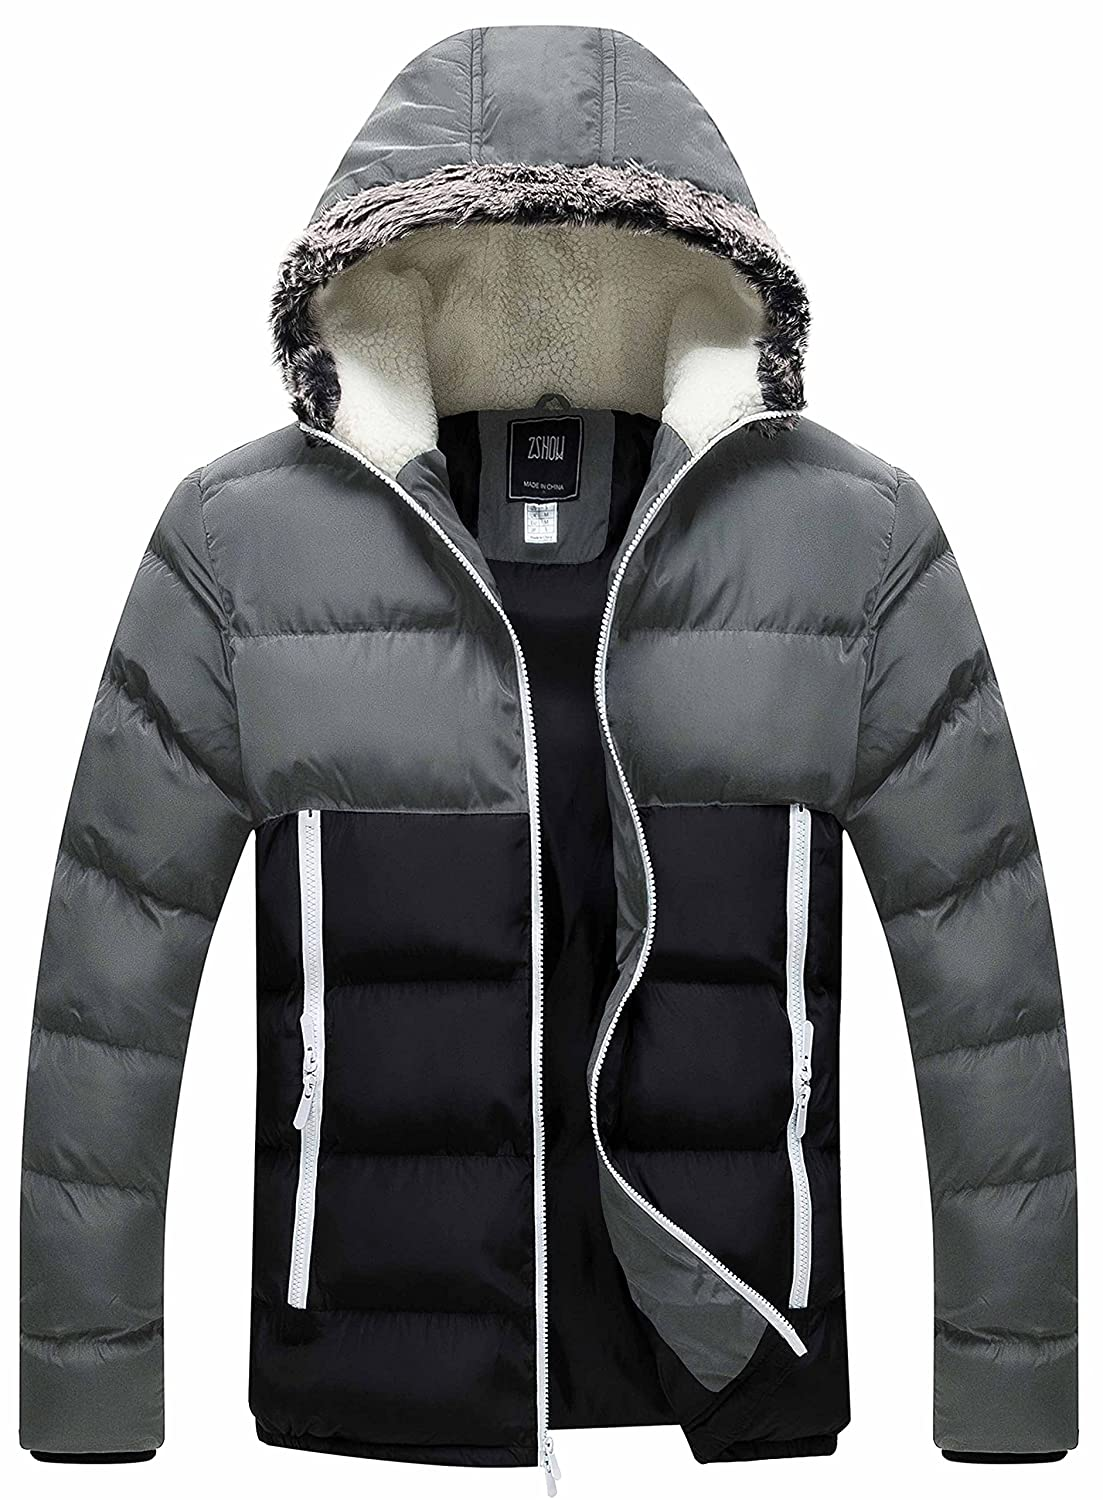 bdd2d71bd43 Amazon.com  ZSHOW Men s Winter Thickened Puffer Jacket Hooded Cotton  Quilted Coat Outerwear  Clothing